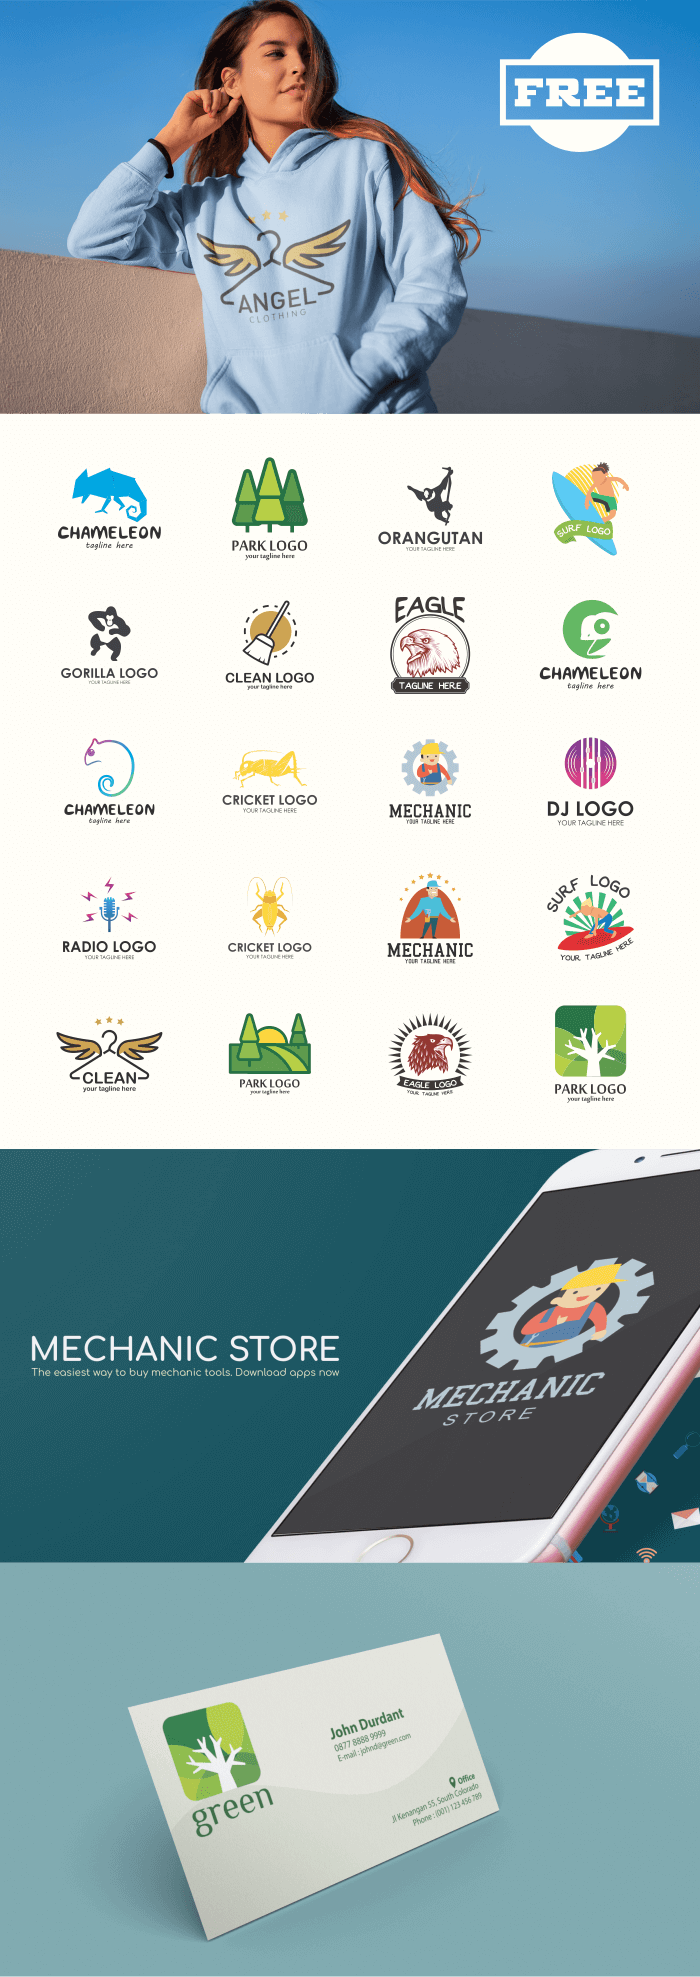 FREE - 20 Creative Logo Design Collection